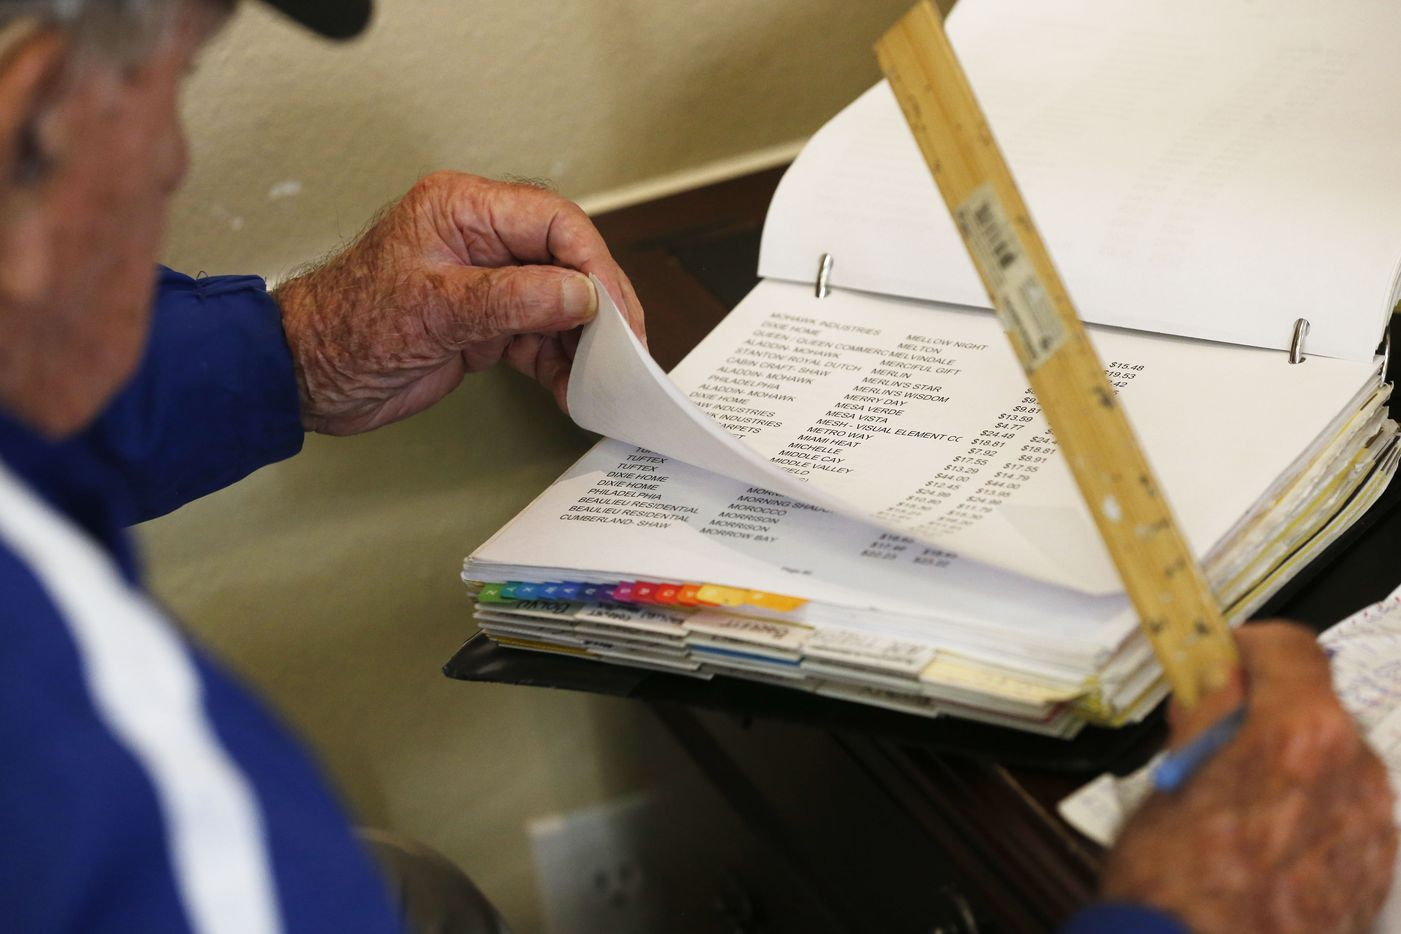 Chester Hollingsworth combs through a notebook looking for prices to put on a carpet pricing display chart at S&H Flooring in Dallas on Tuesday, October 24, 2017.